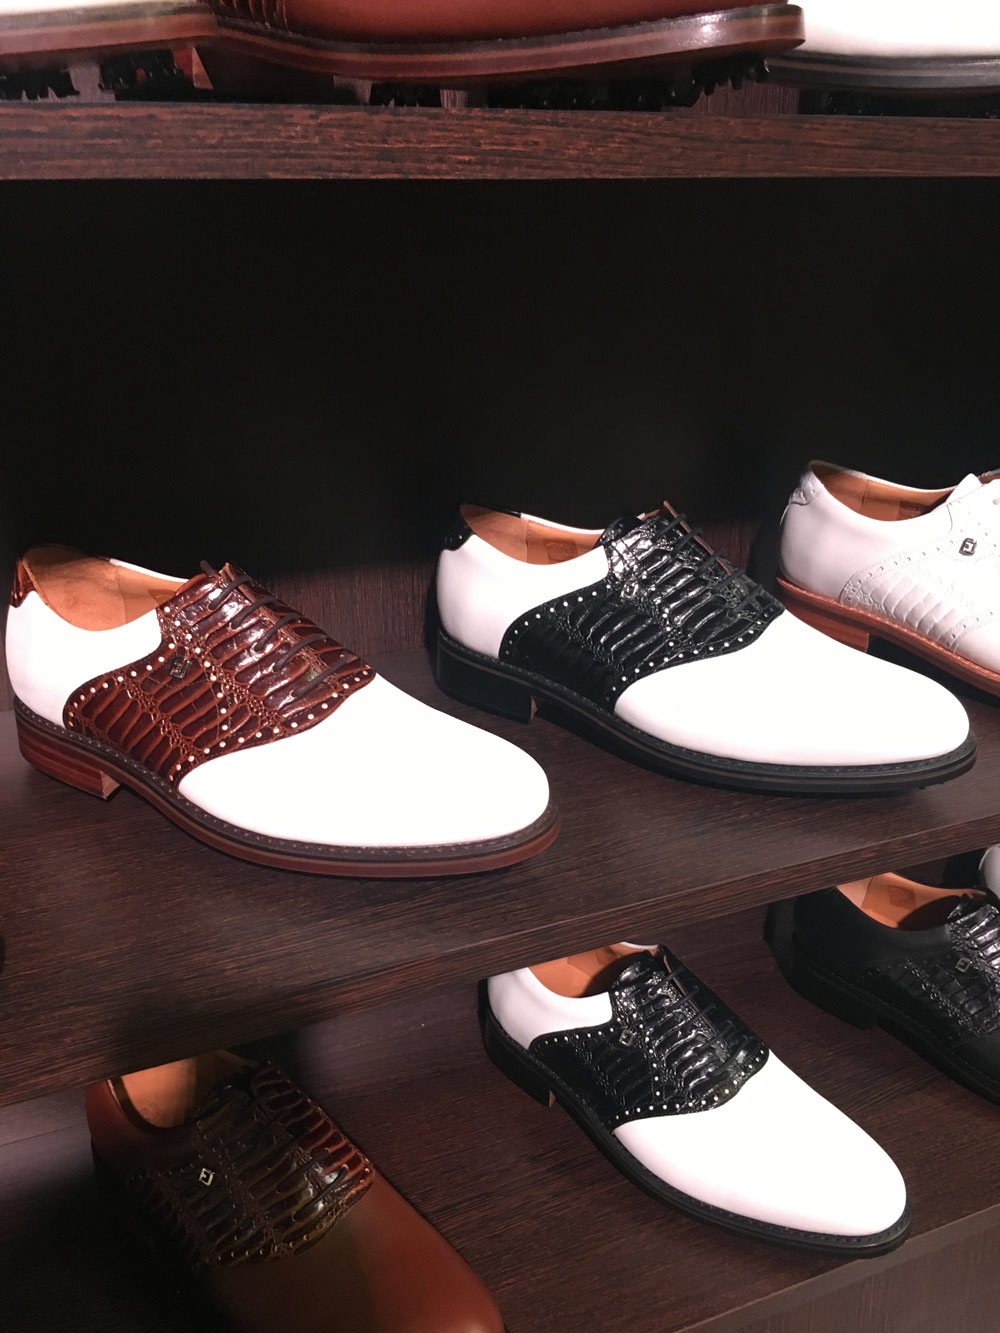 The FJ 1857 collection's footwear line features hand-selected premium Italian calfskin leathers, leather outsoles, full leather linings and suede heel pockets. $750; footjoy.com